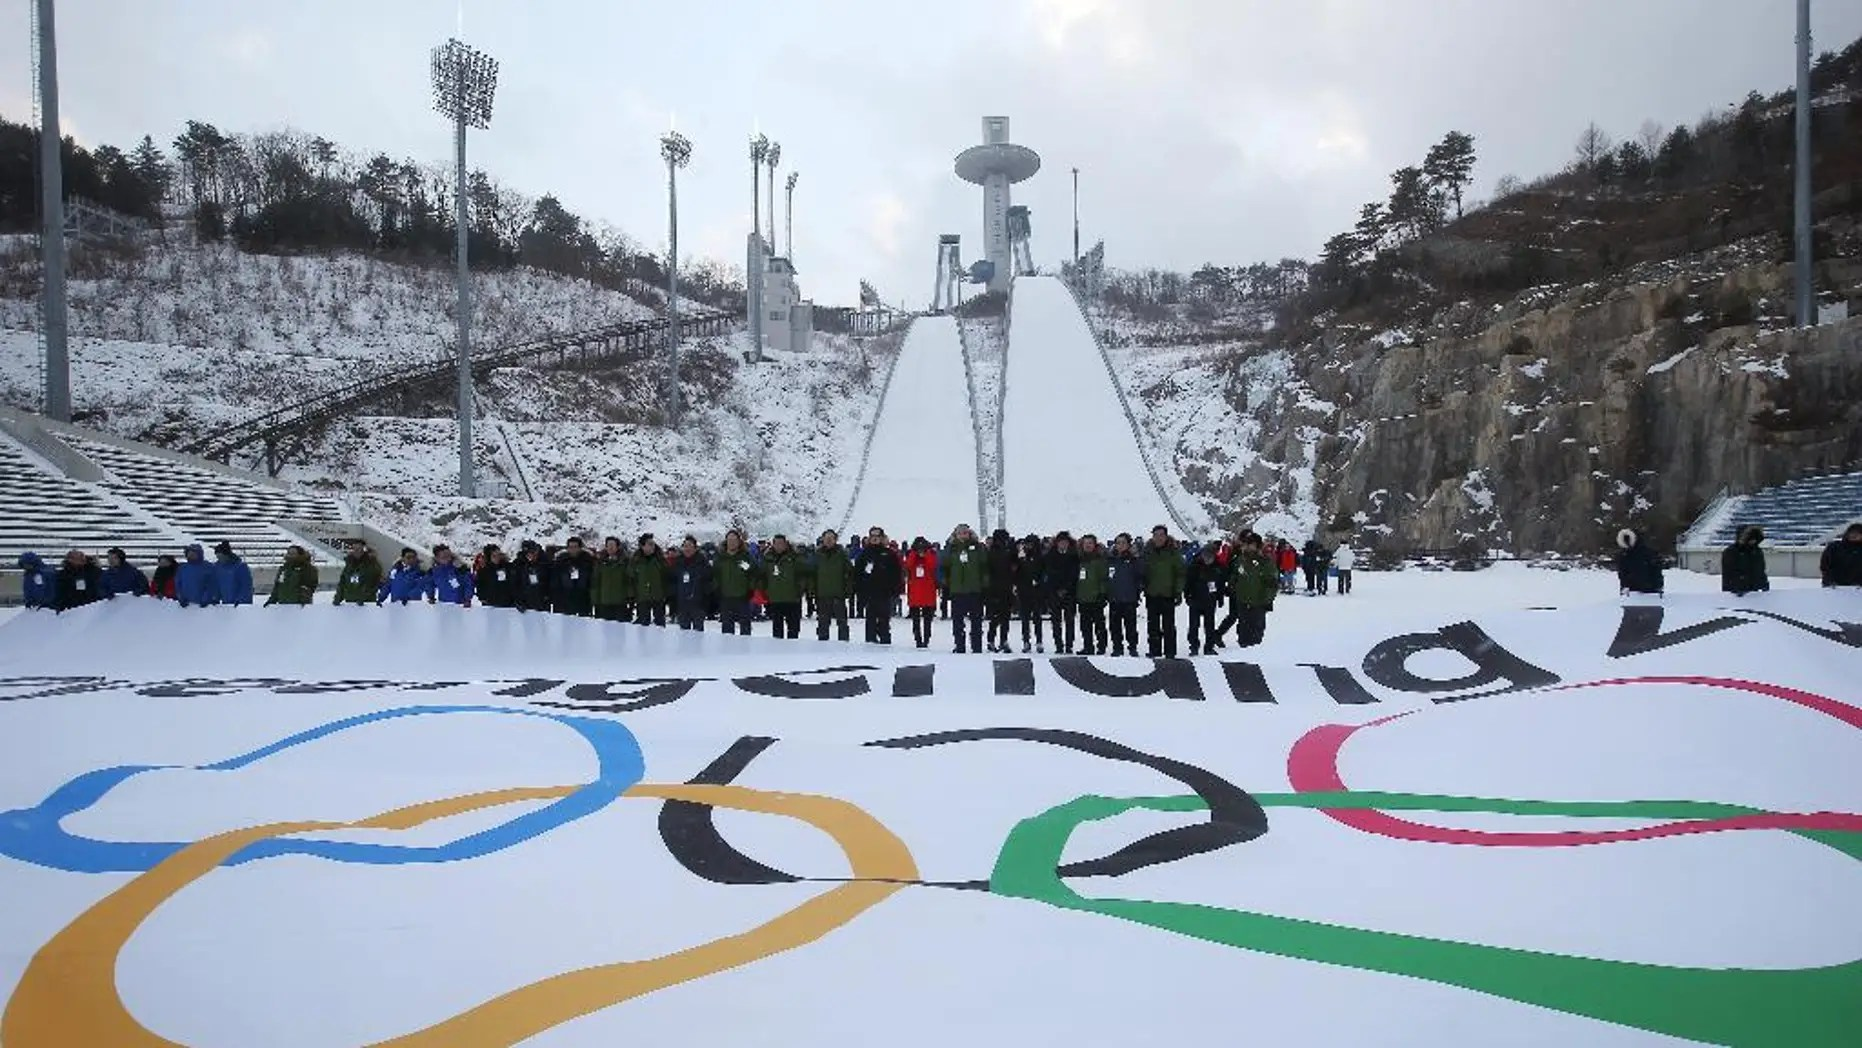 About South Korea South Korea Prepares For Olympics With Region In No Mood For